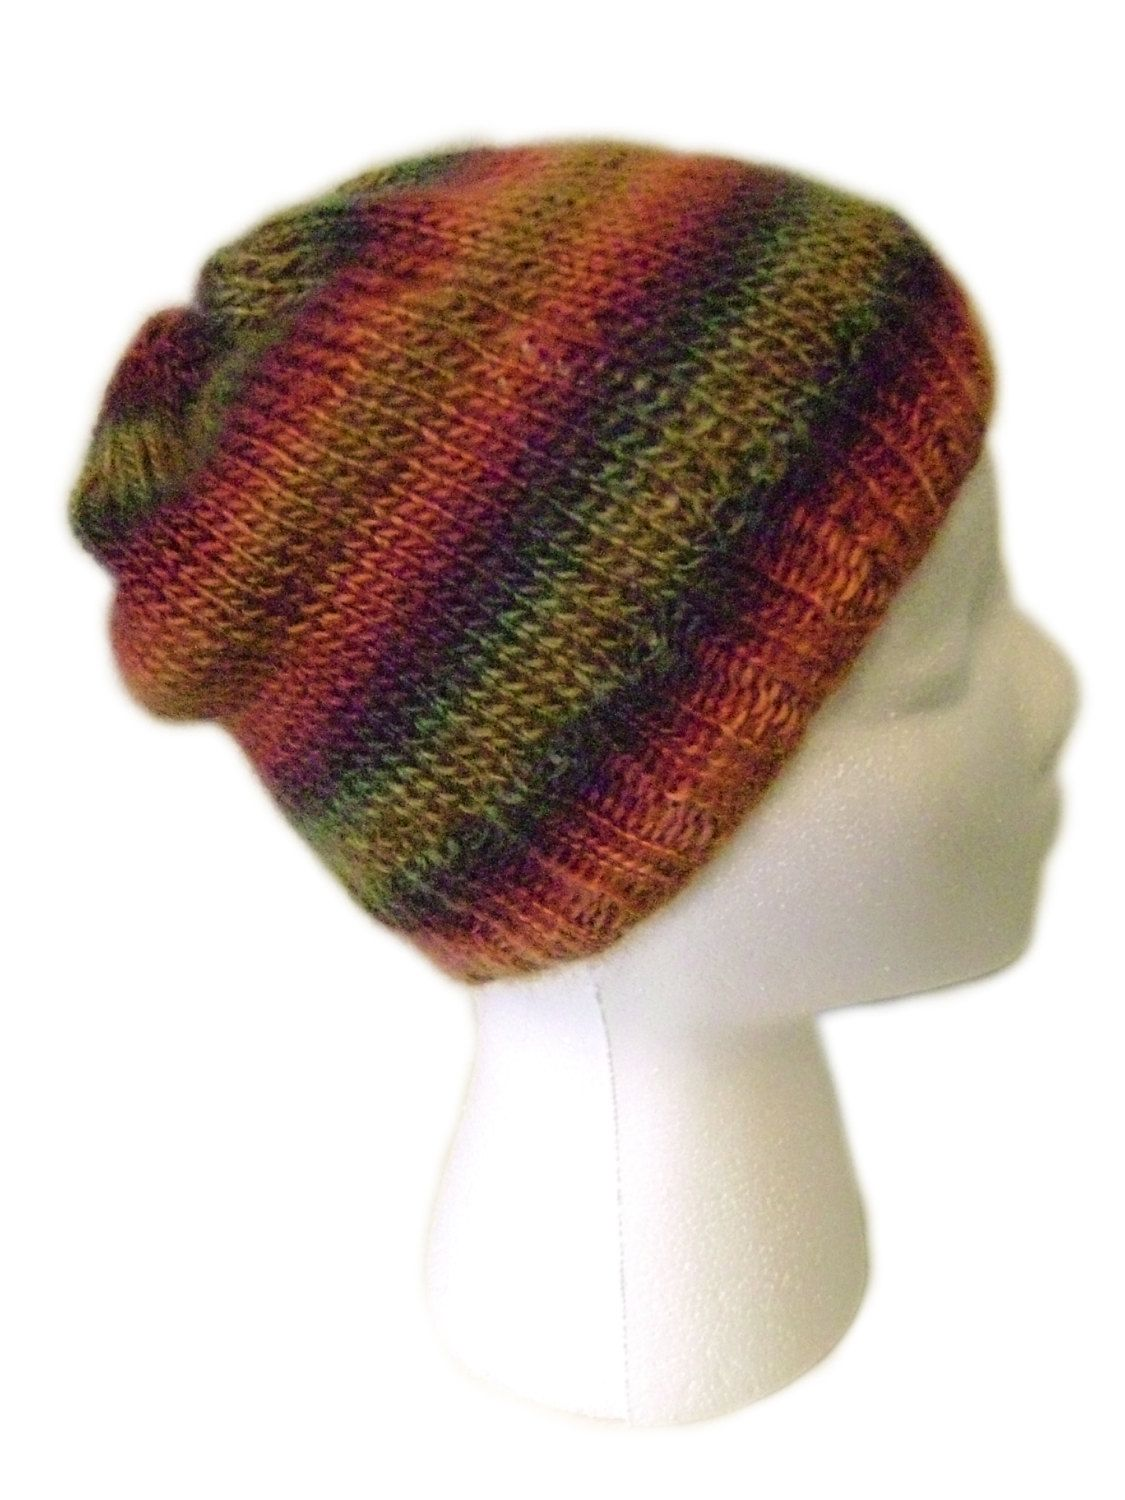 Girls Slouchy Beanie Hat Handmade Knit Multi-colored Super-soft Stylish - pinned by pin4etsy.com